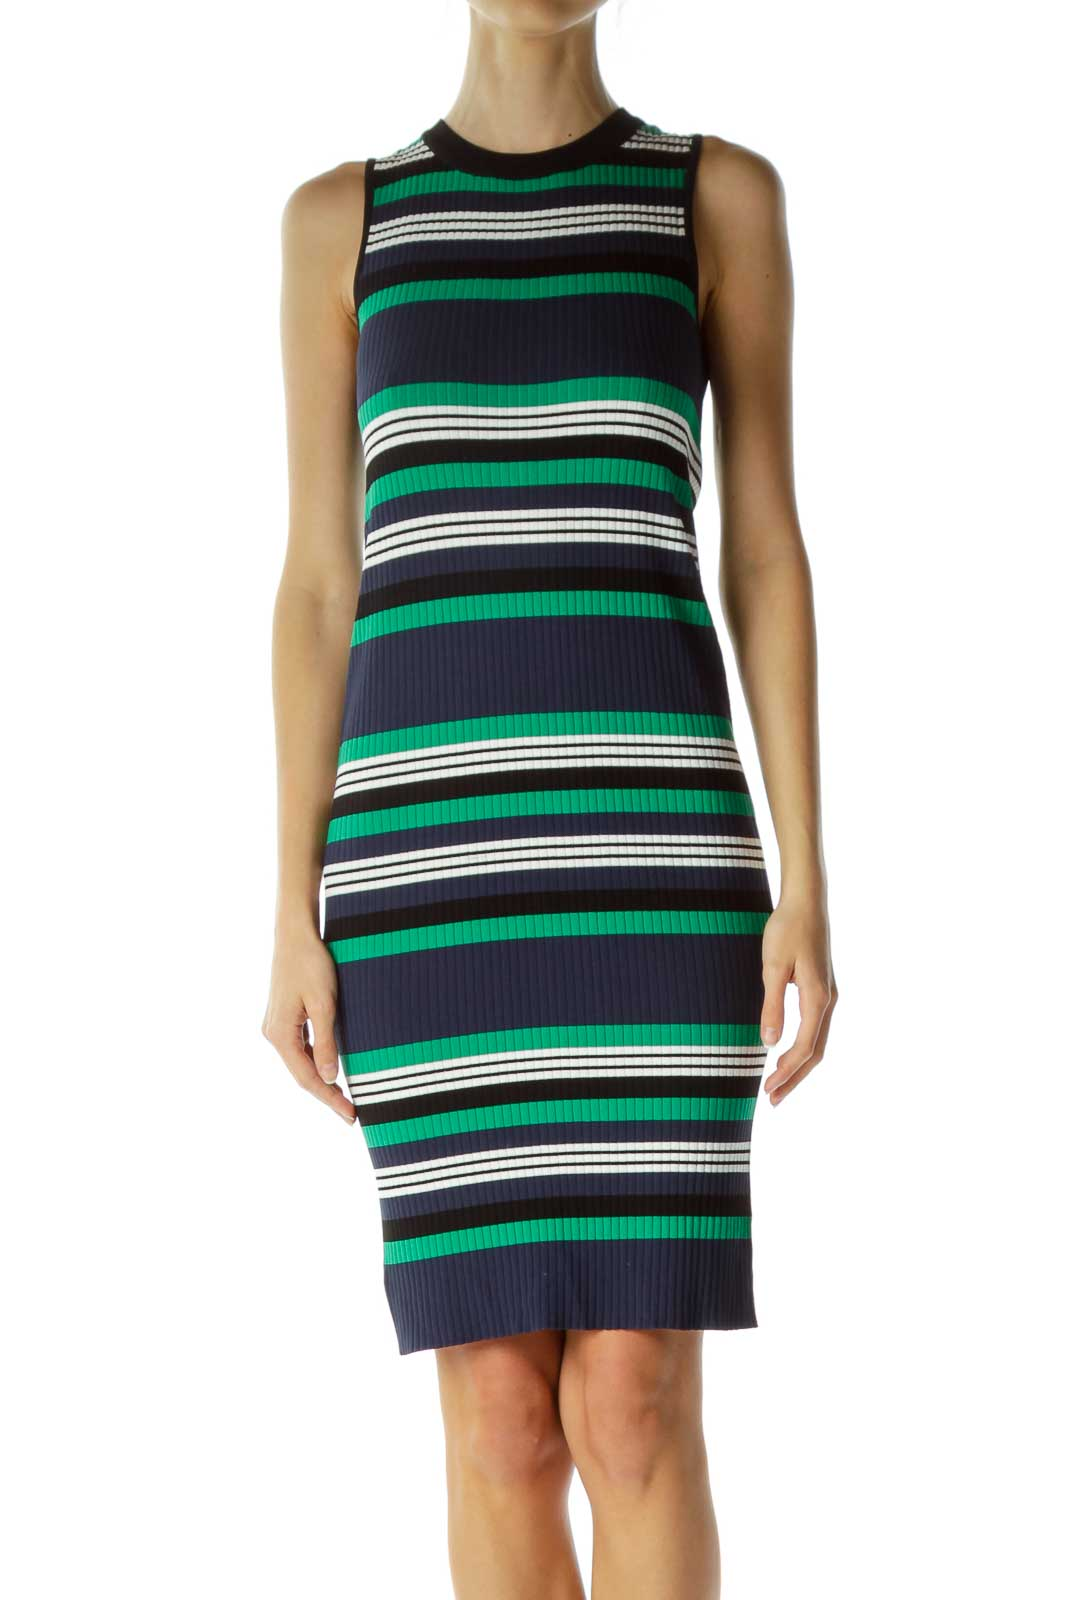 Green Navy Striped Sleeveless Knit Dress